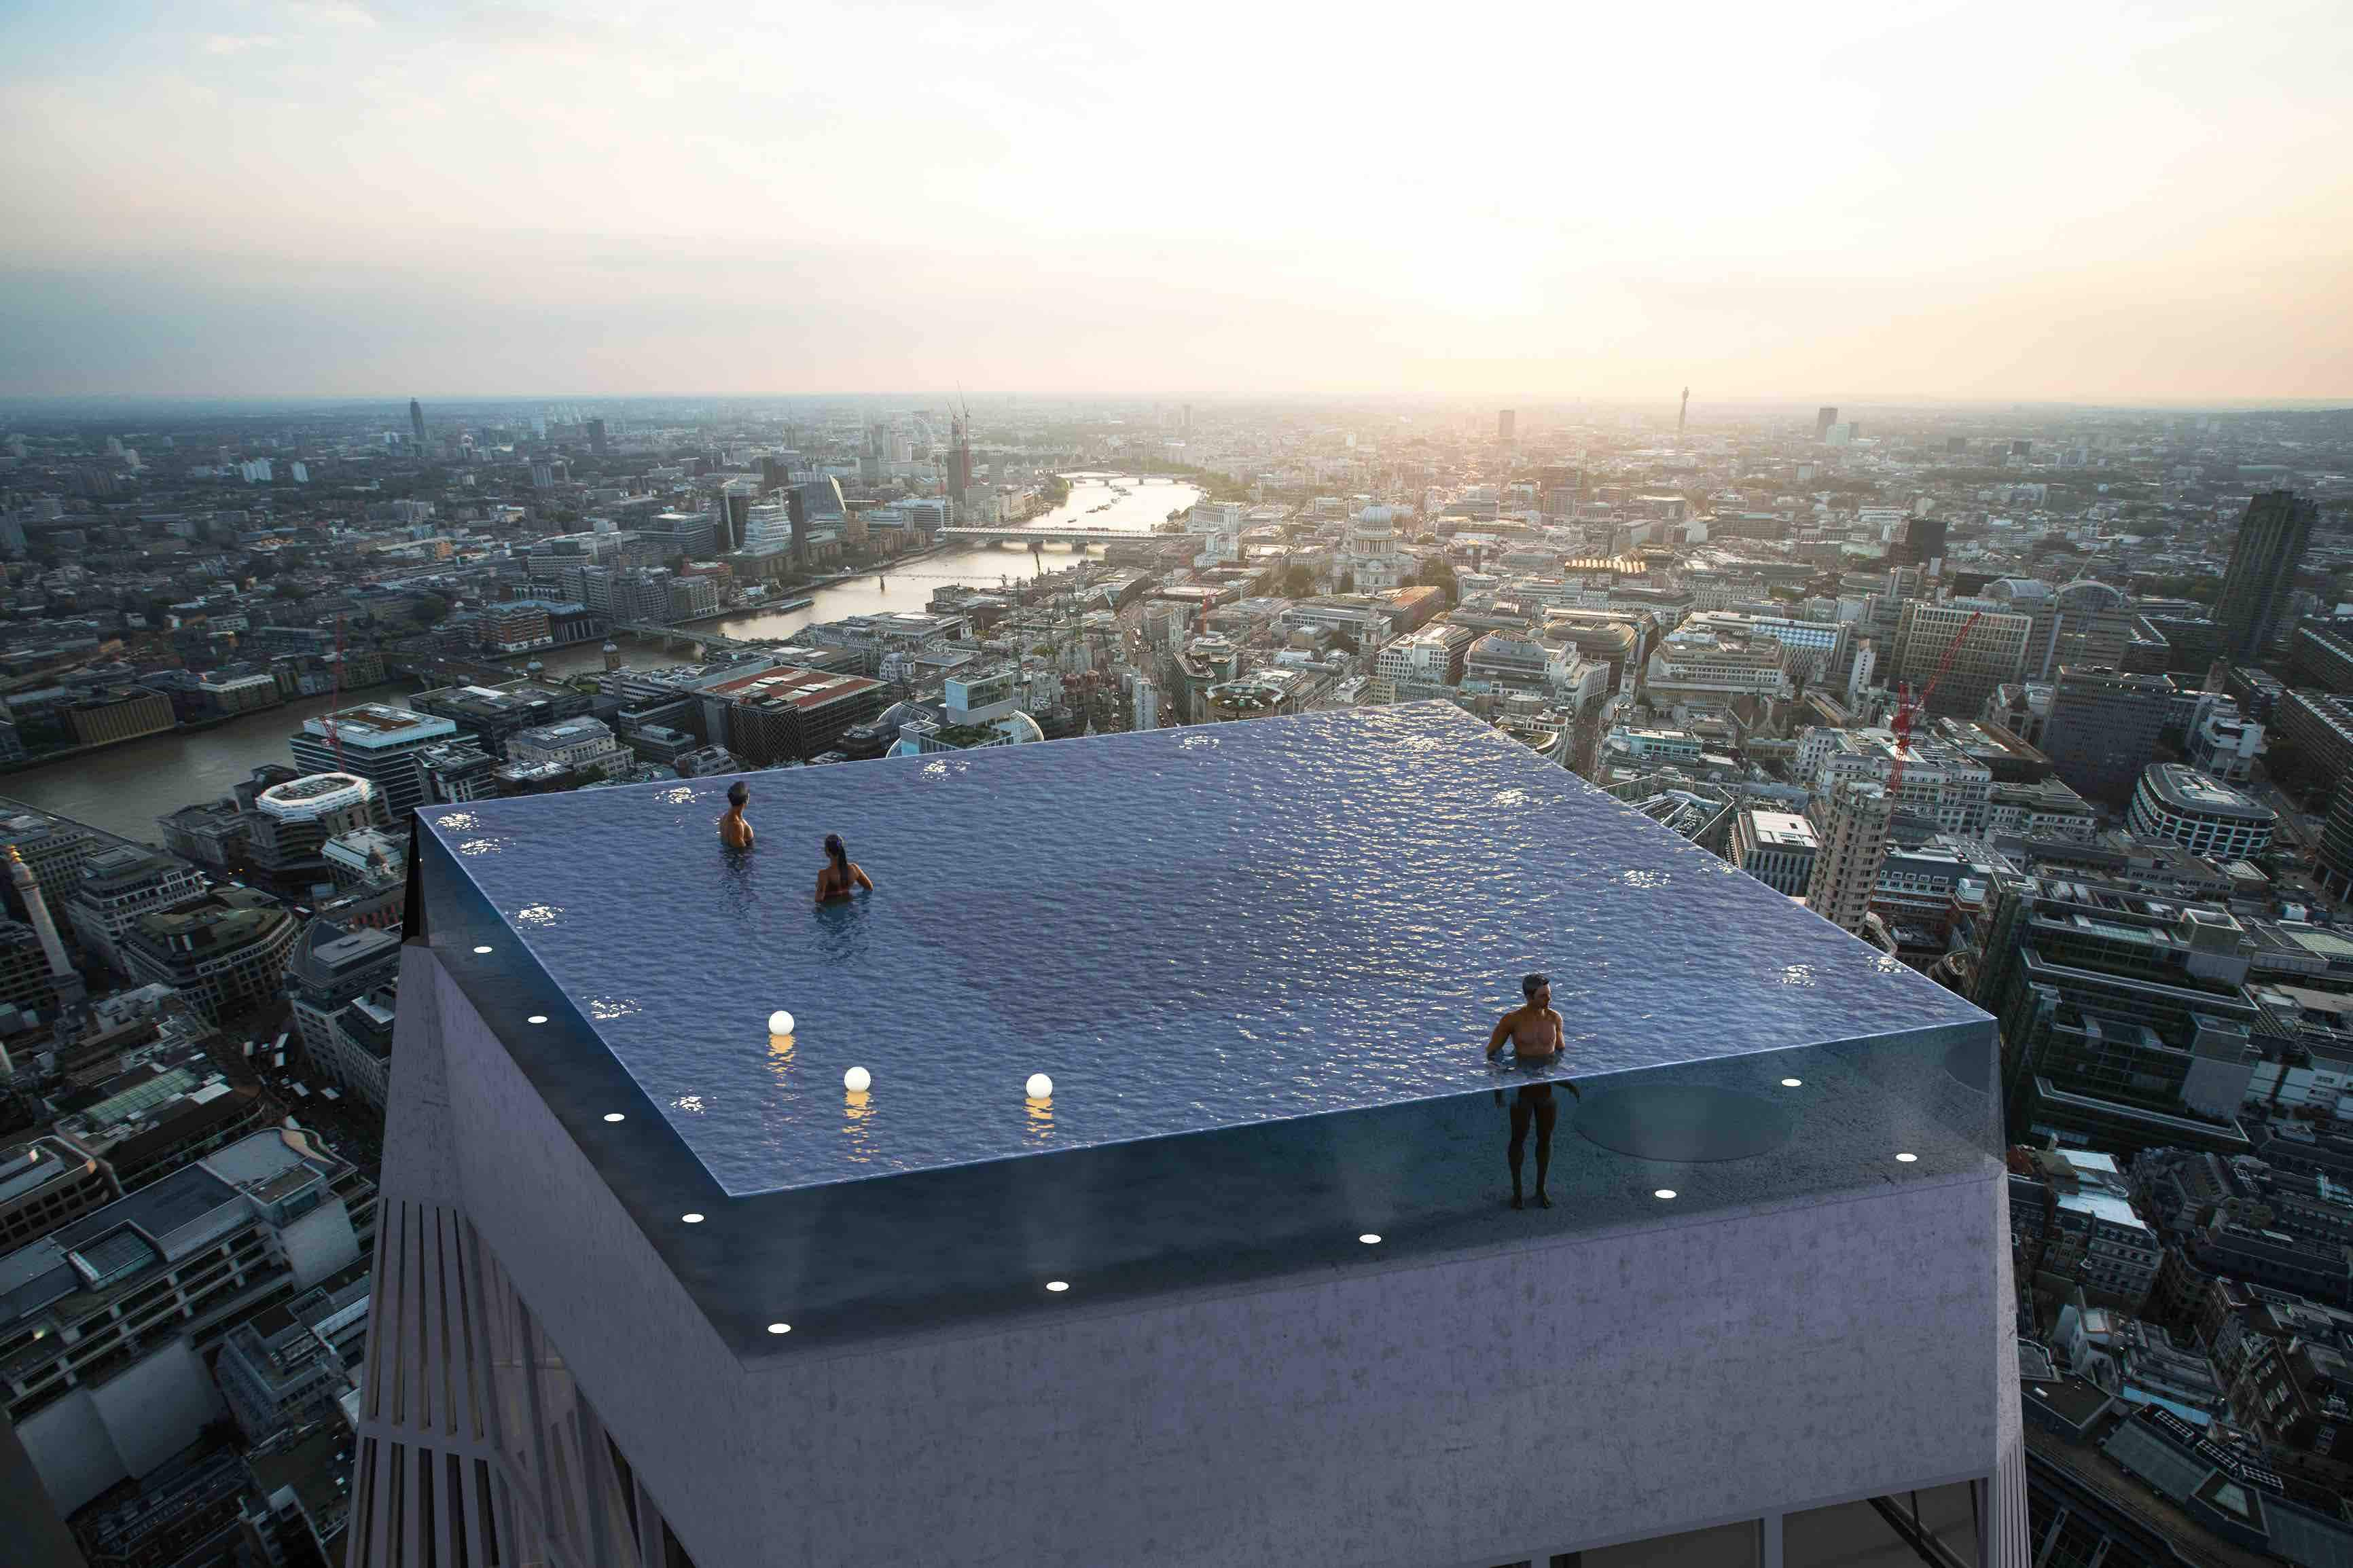 The world's first 360-degree infinity pool could be built above a skyscraper in London